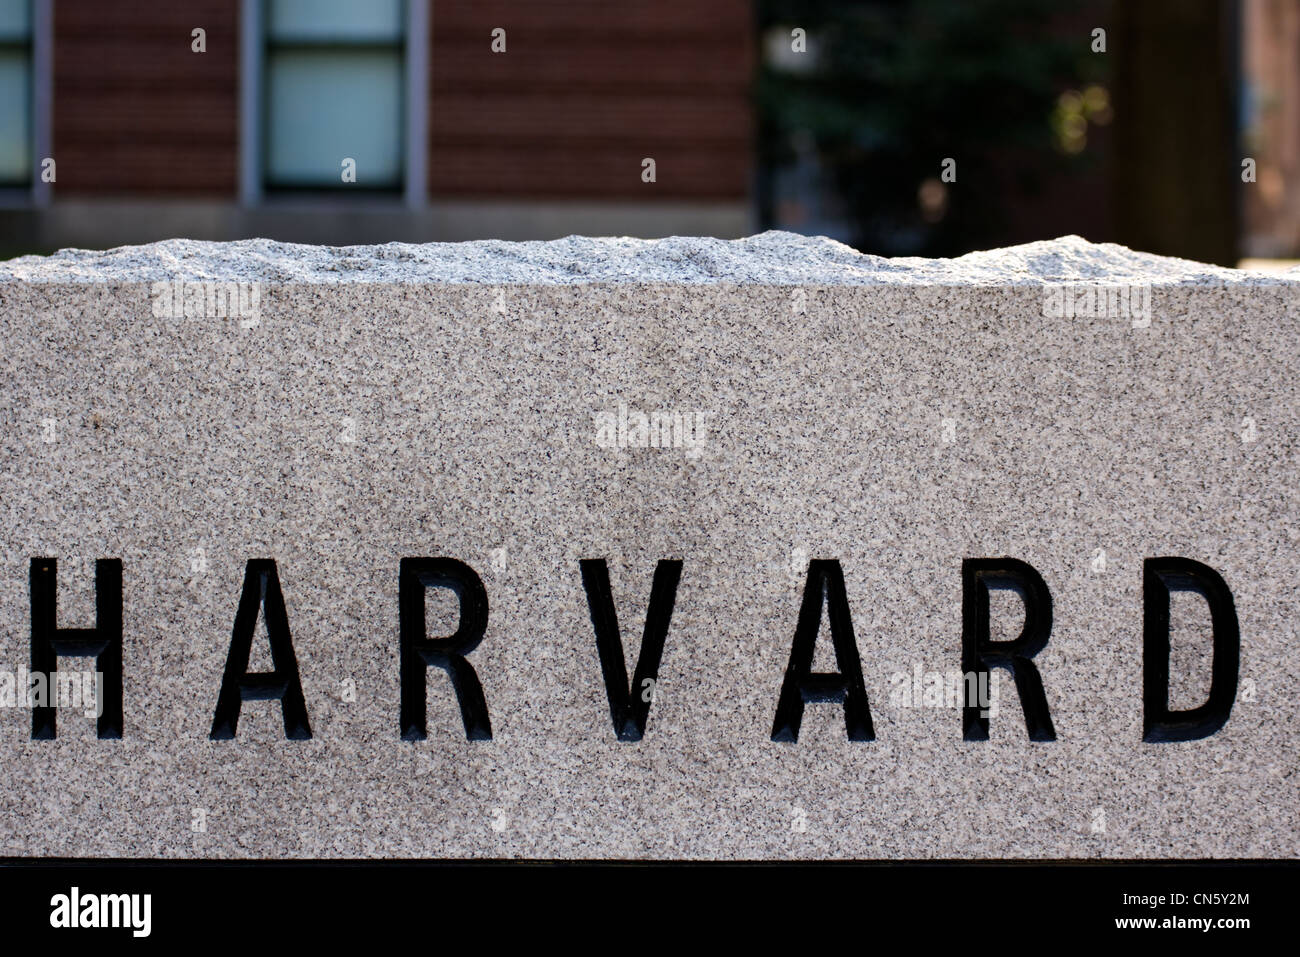 etail of a granite marker in a driveway at Harvard University campus in Cambridge, MA, showing the letters HARVARD - Stock Image